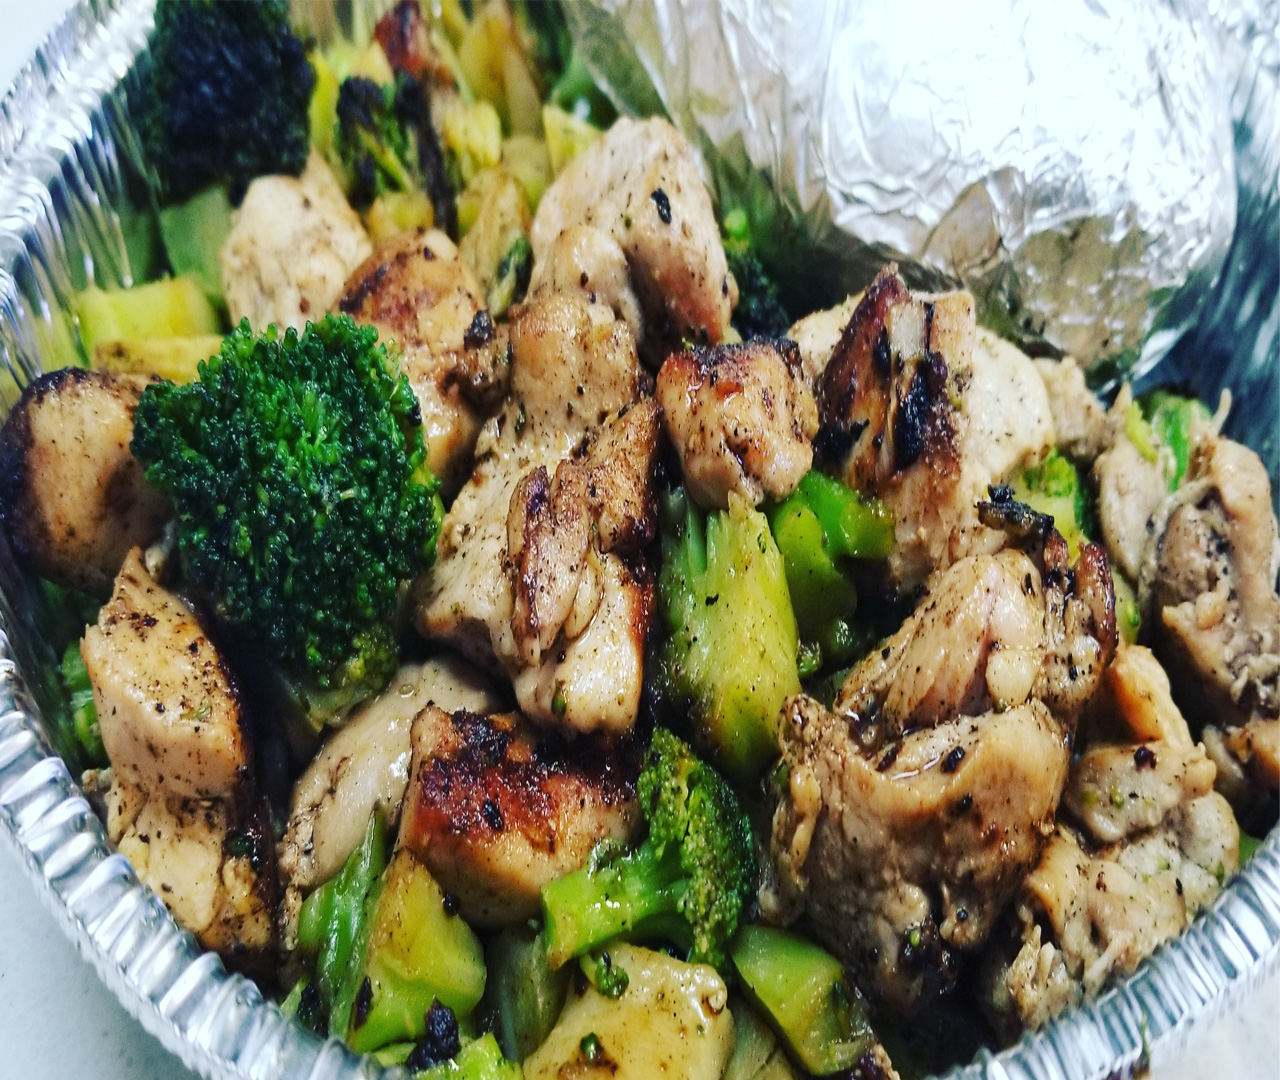 Broccoli & Chicken Dinner